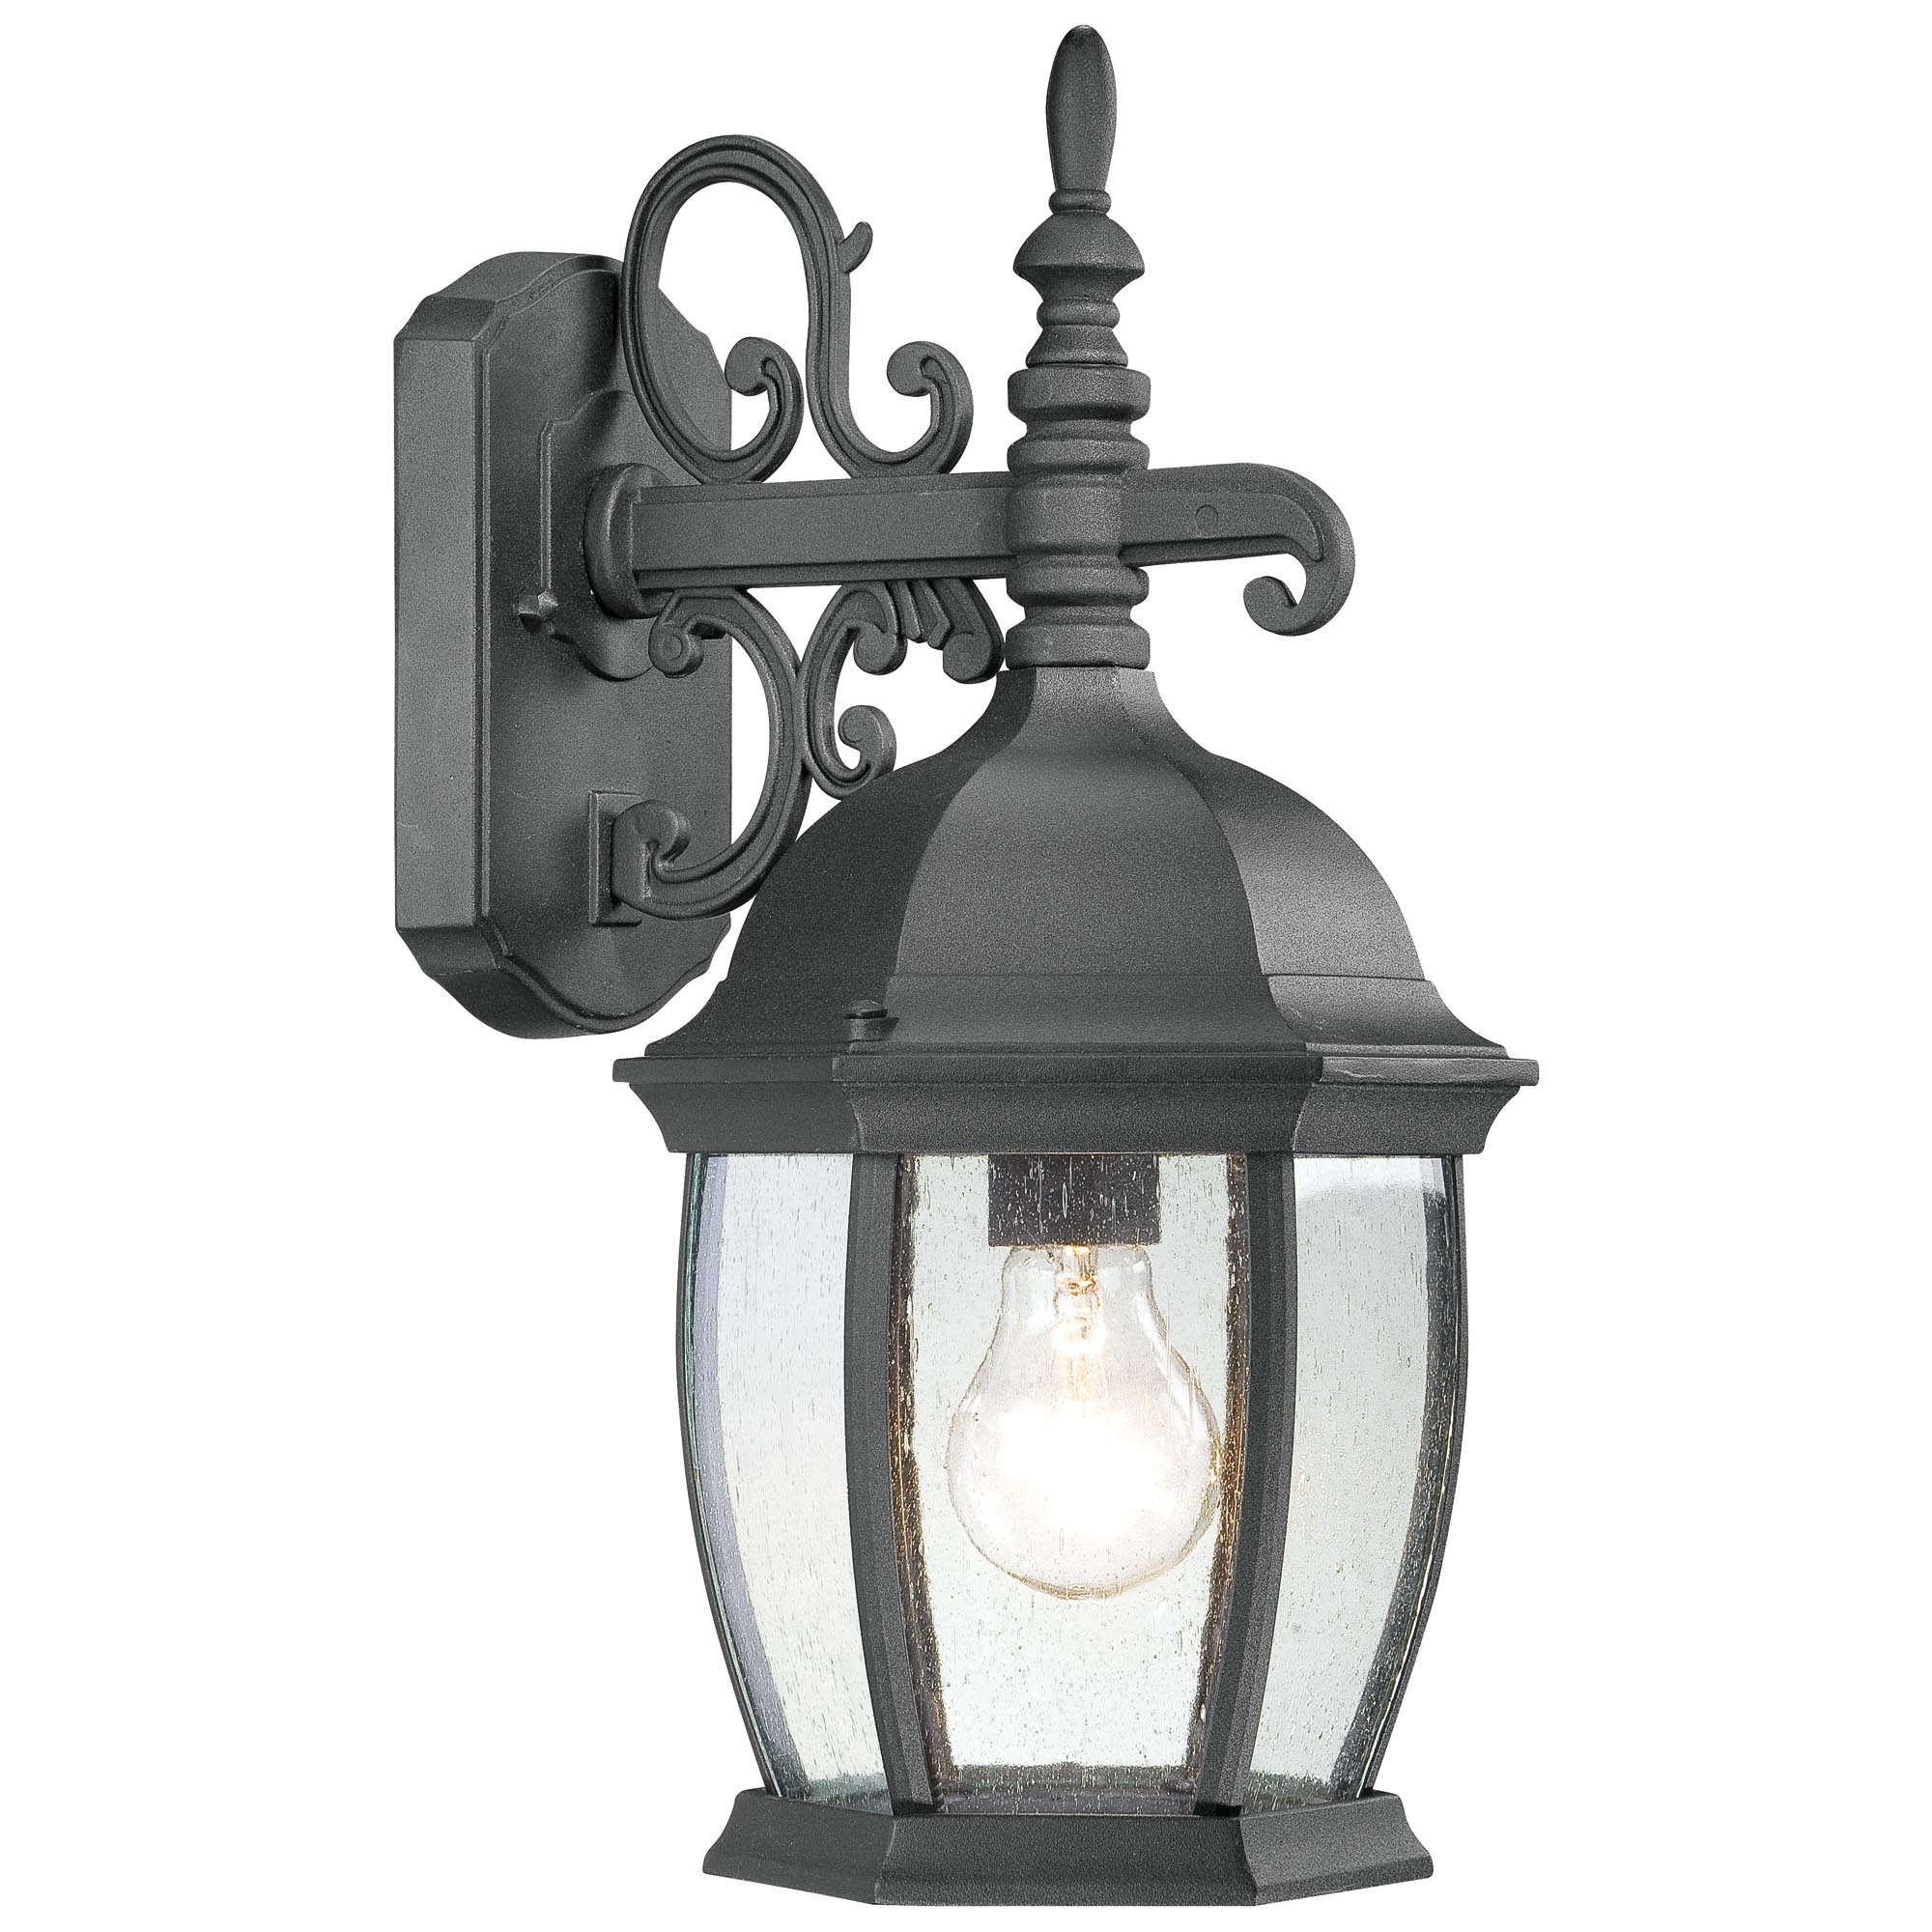 Popular Fixtures Light : Outdoor Light Fixtures Glass Replacements With Outdoor Lighting Japanese Lanterns (View 11 of 20)